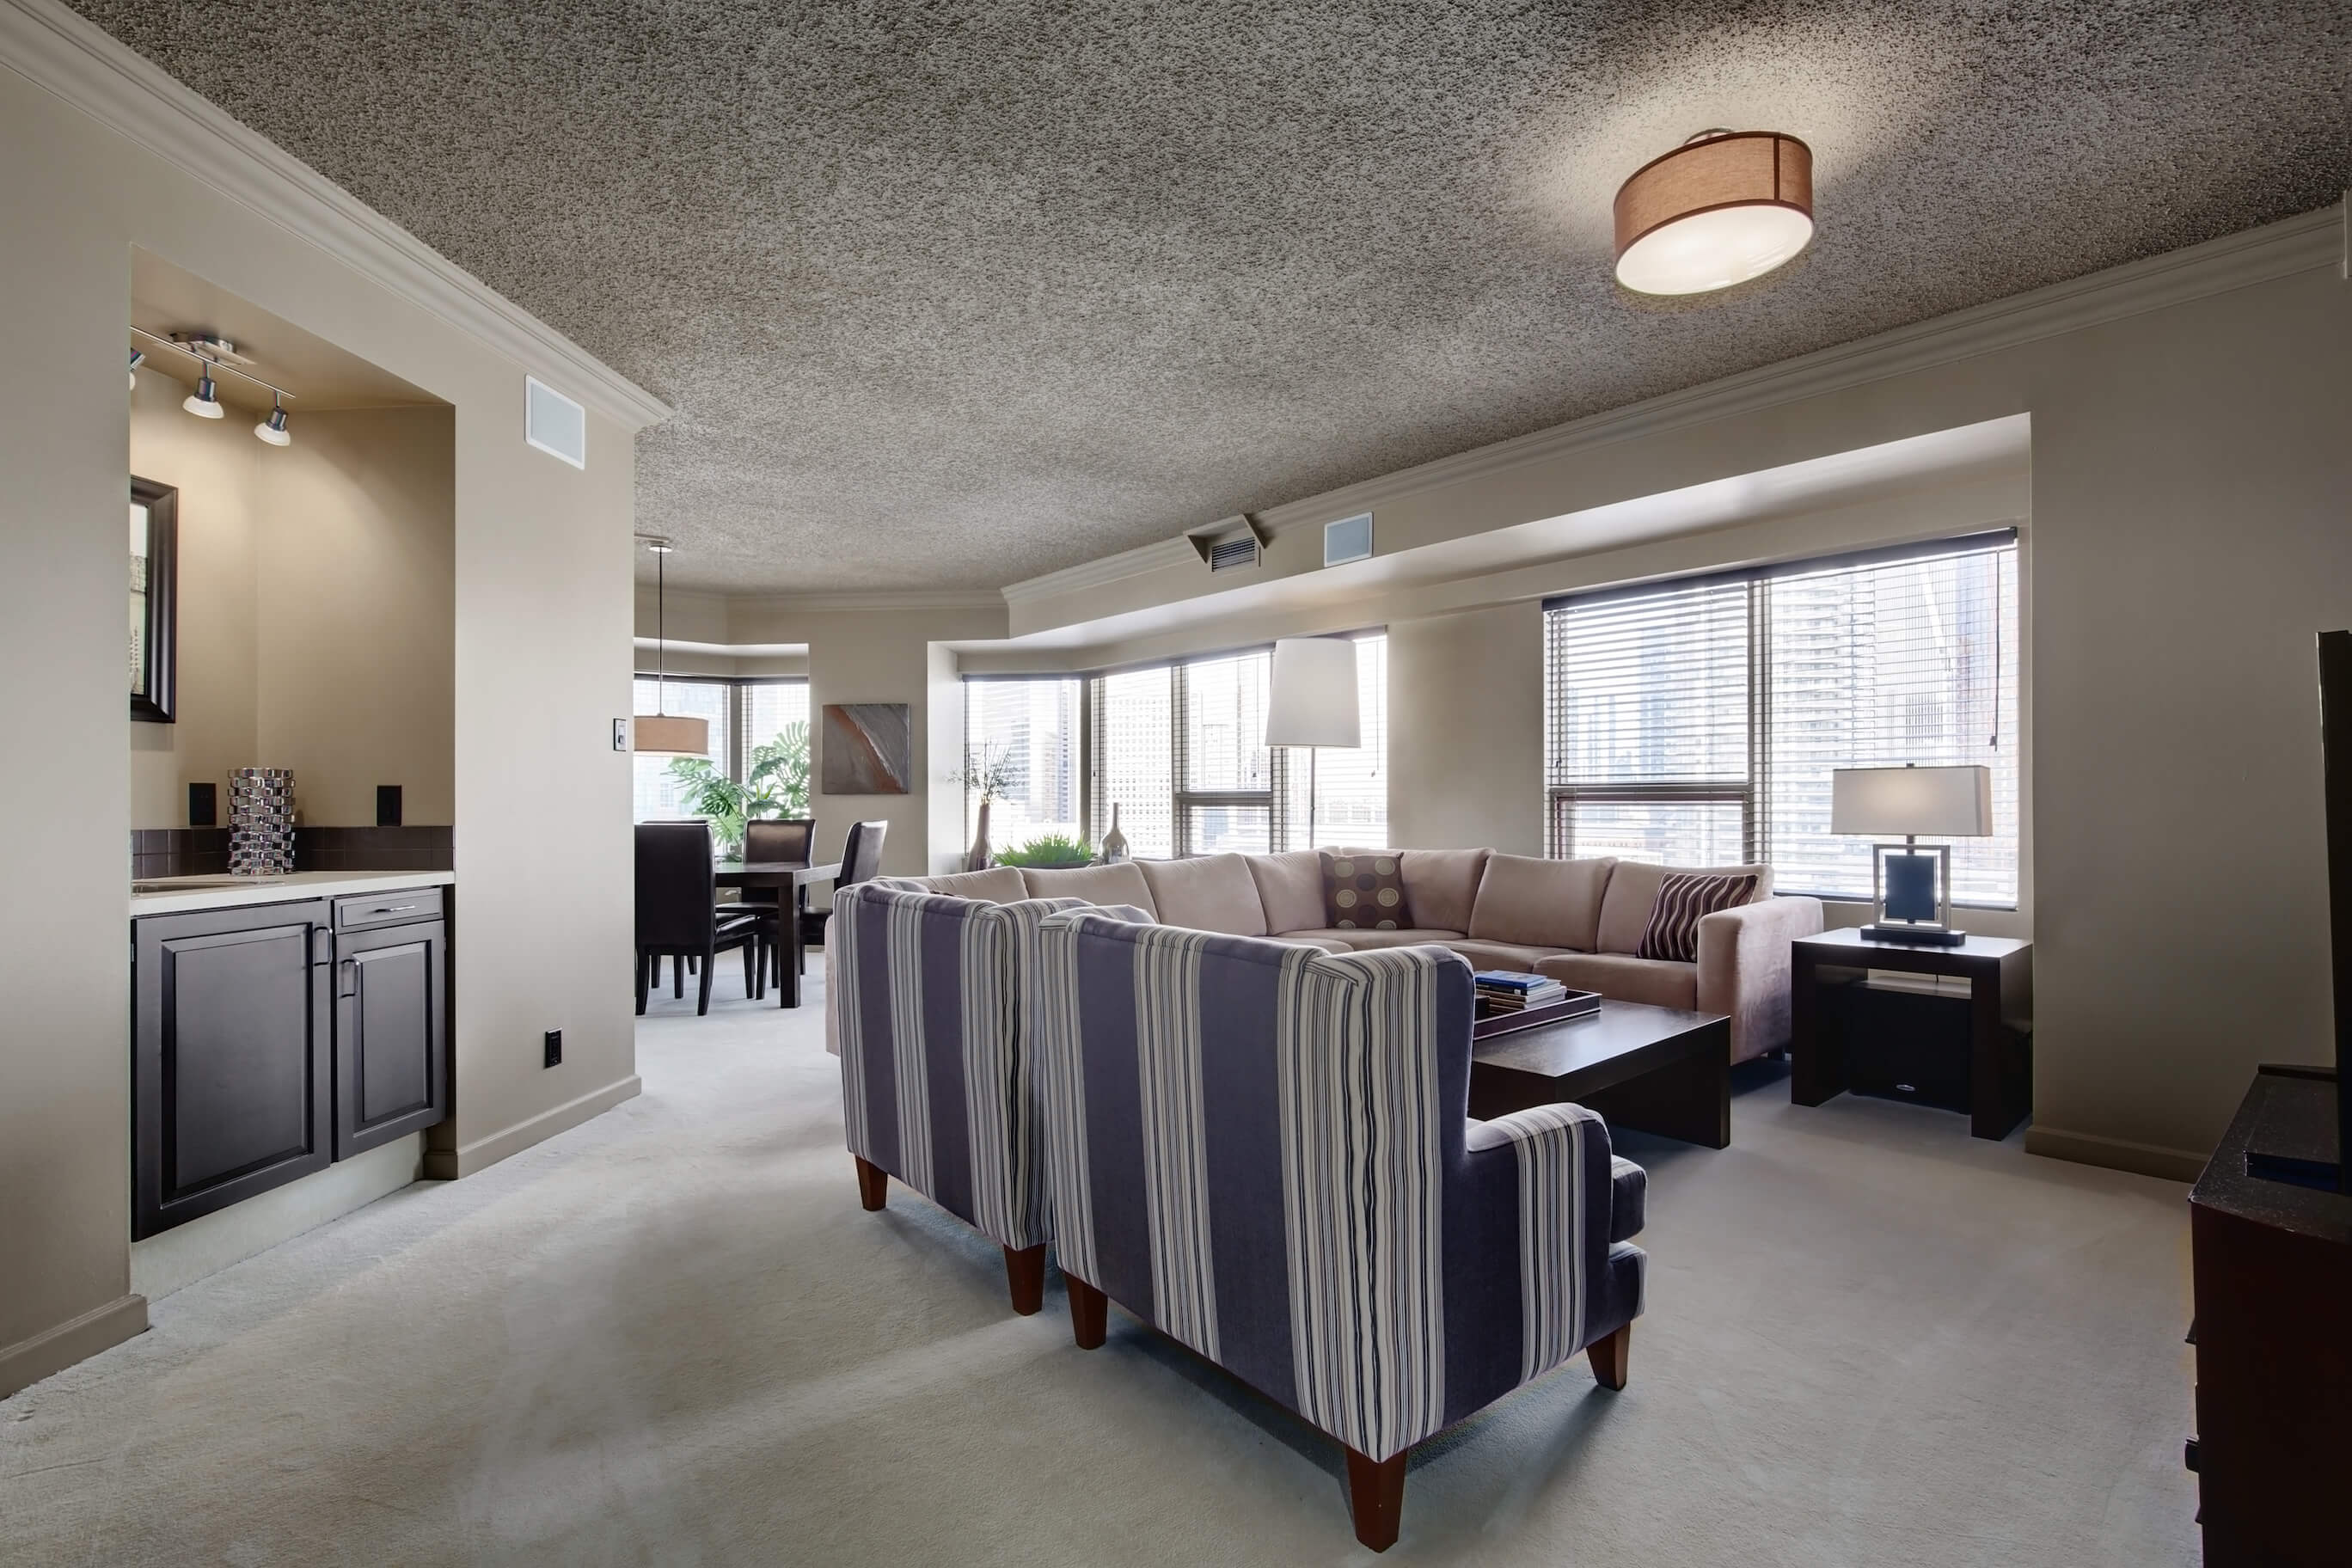 1230-720-13-avenue-sw-the-estate-calgary-real-estate-for-sale-condo-beltline-luxury-residence-concierge-amenities